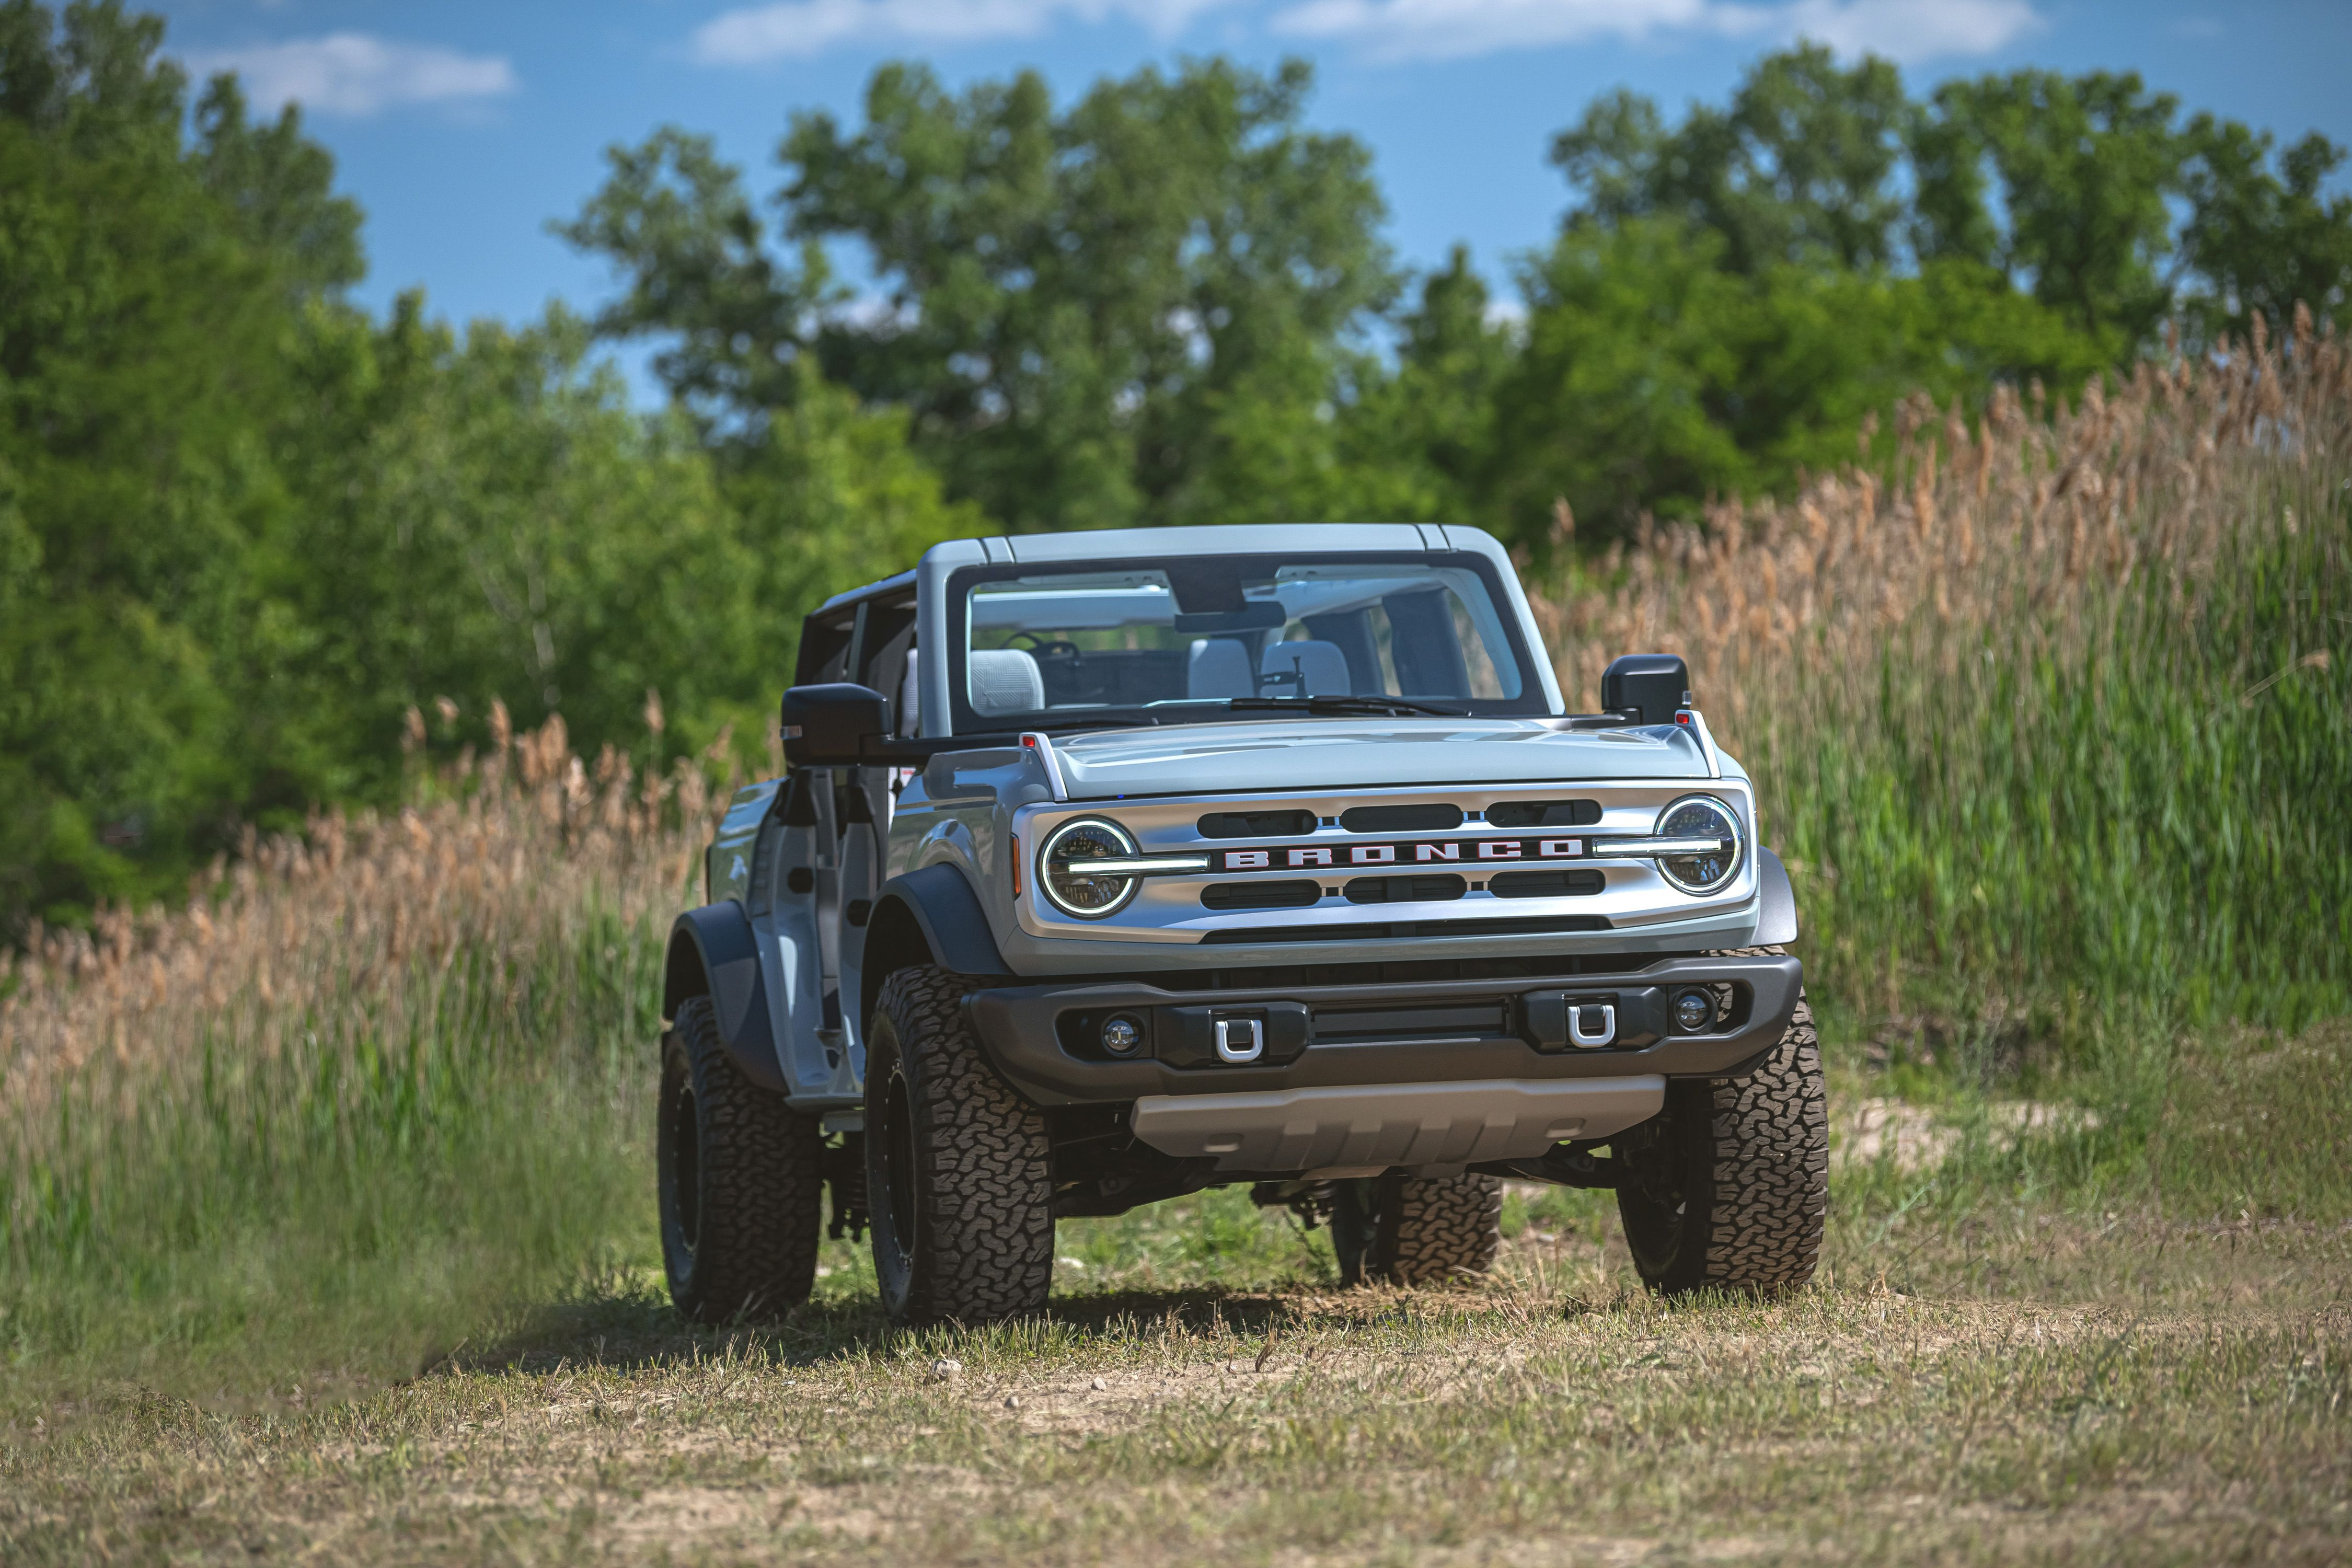 View Photos Of The 2021 Ford Bronco 4 Door